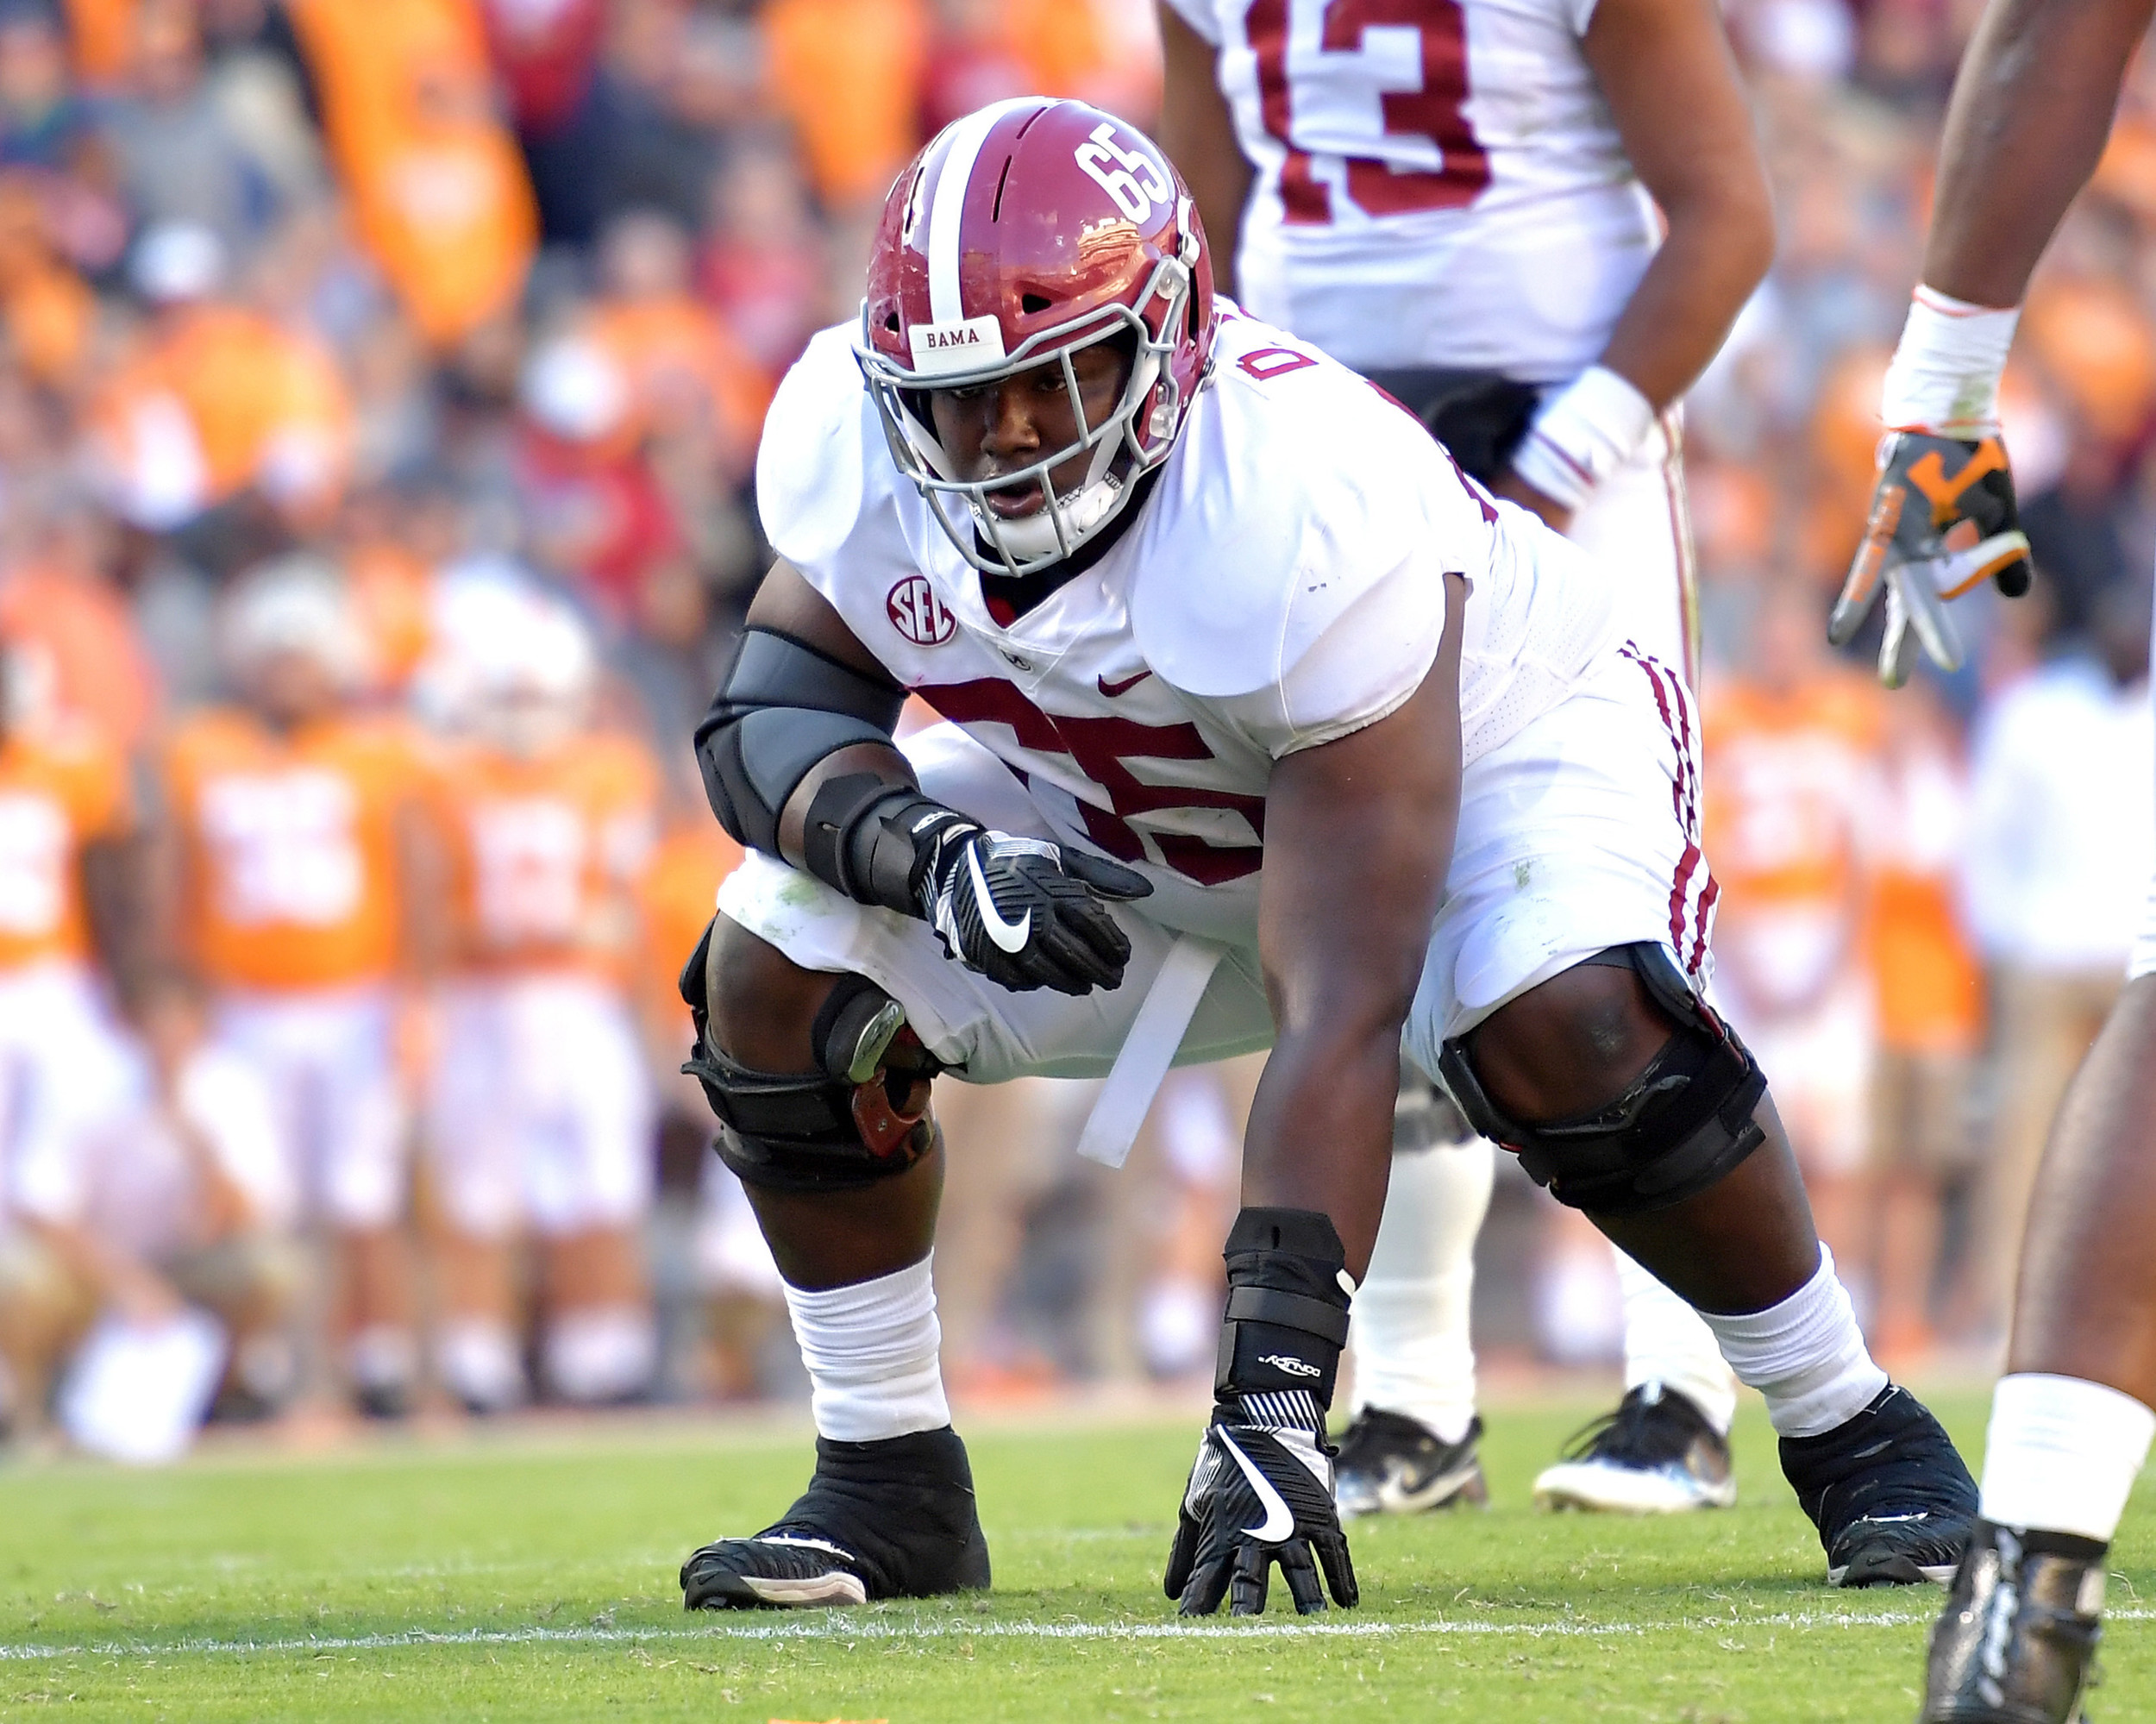 Alabama Crimson Tide offensive lineman Deonte Brown (65) is set prior to the snap during the second quarter of the Alabama at Tennessee NCAA football game on Saturday, Oct. 20, 2018, at Neyland Stadium in Knoxville. Tenn. Alabama wins 58-21. (Photo by Lee Walls)